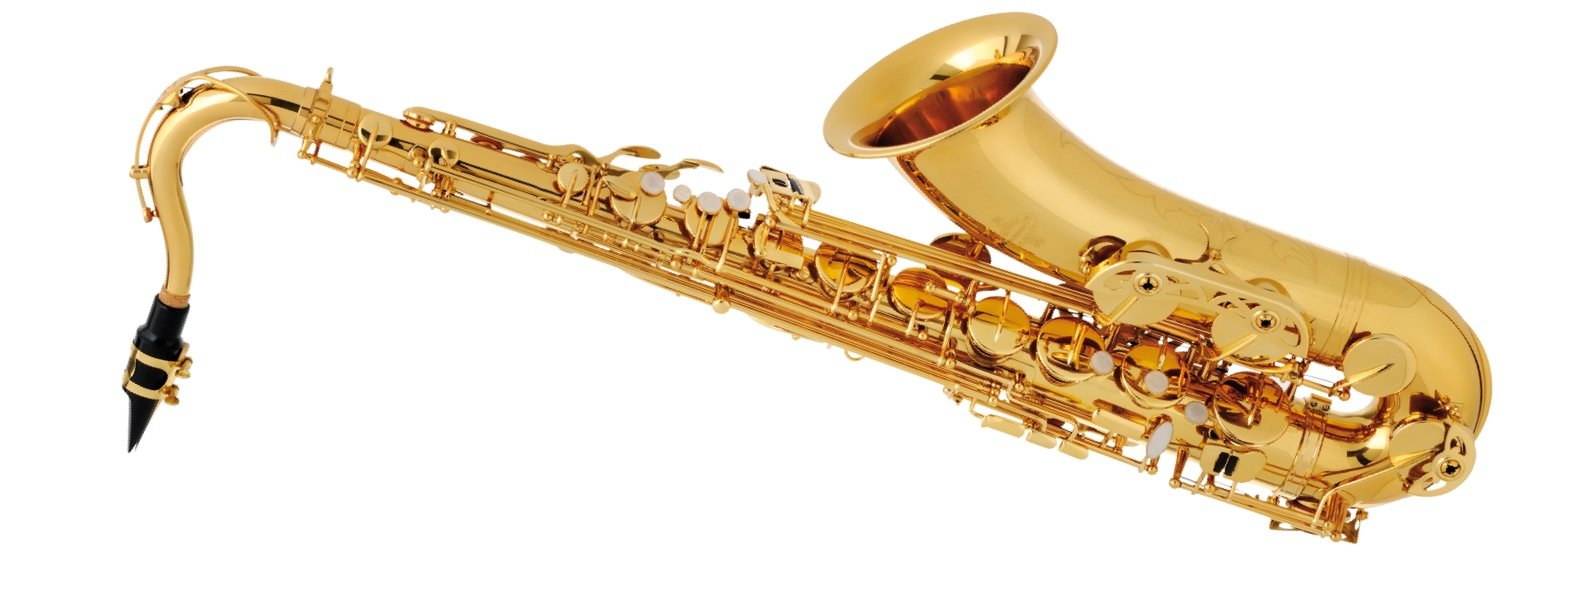 Buffet 100 series Tenor Sax